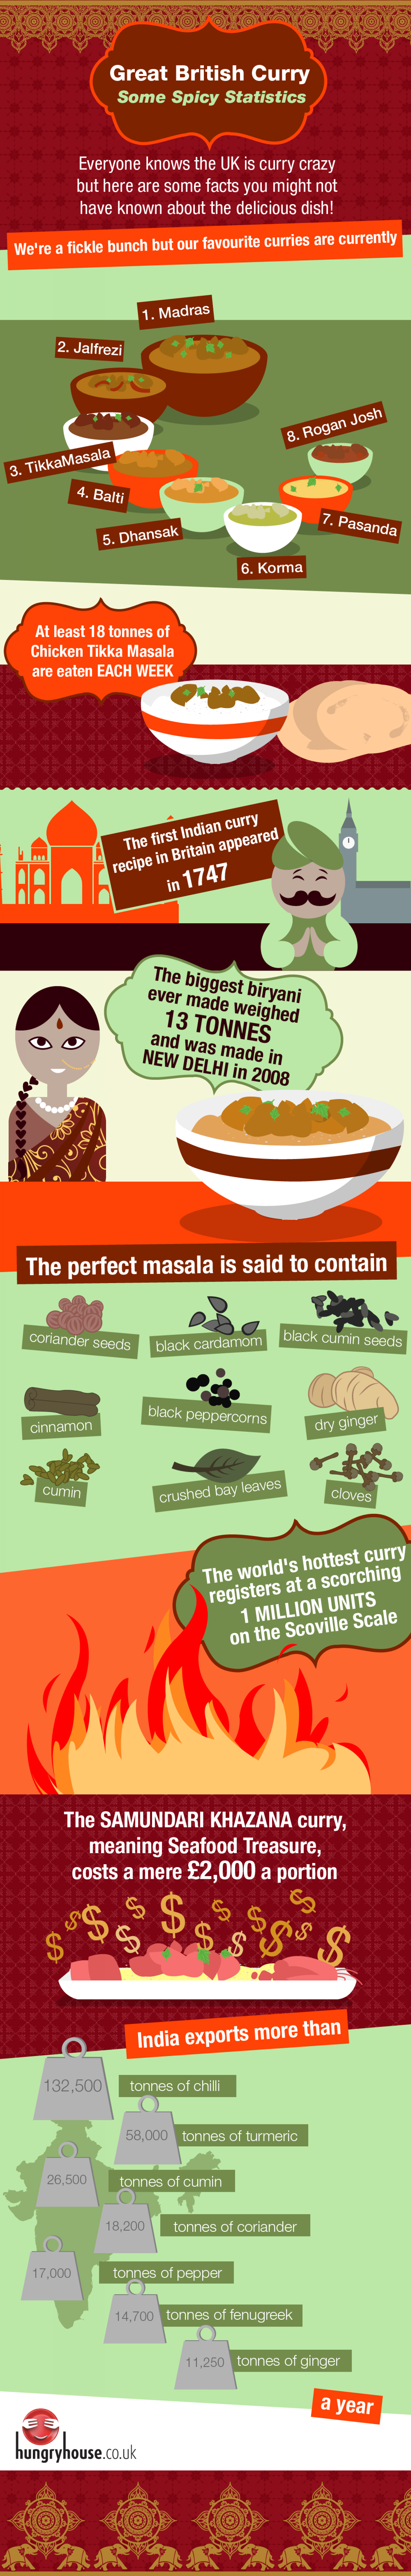 Great British Curry: Some Spicy Statistics Infographic